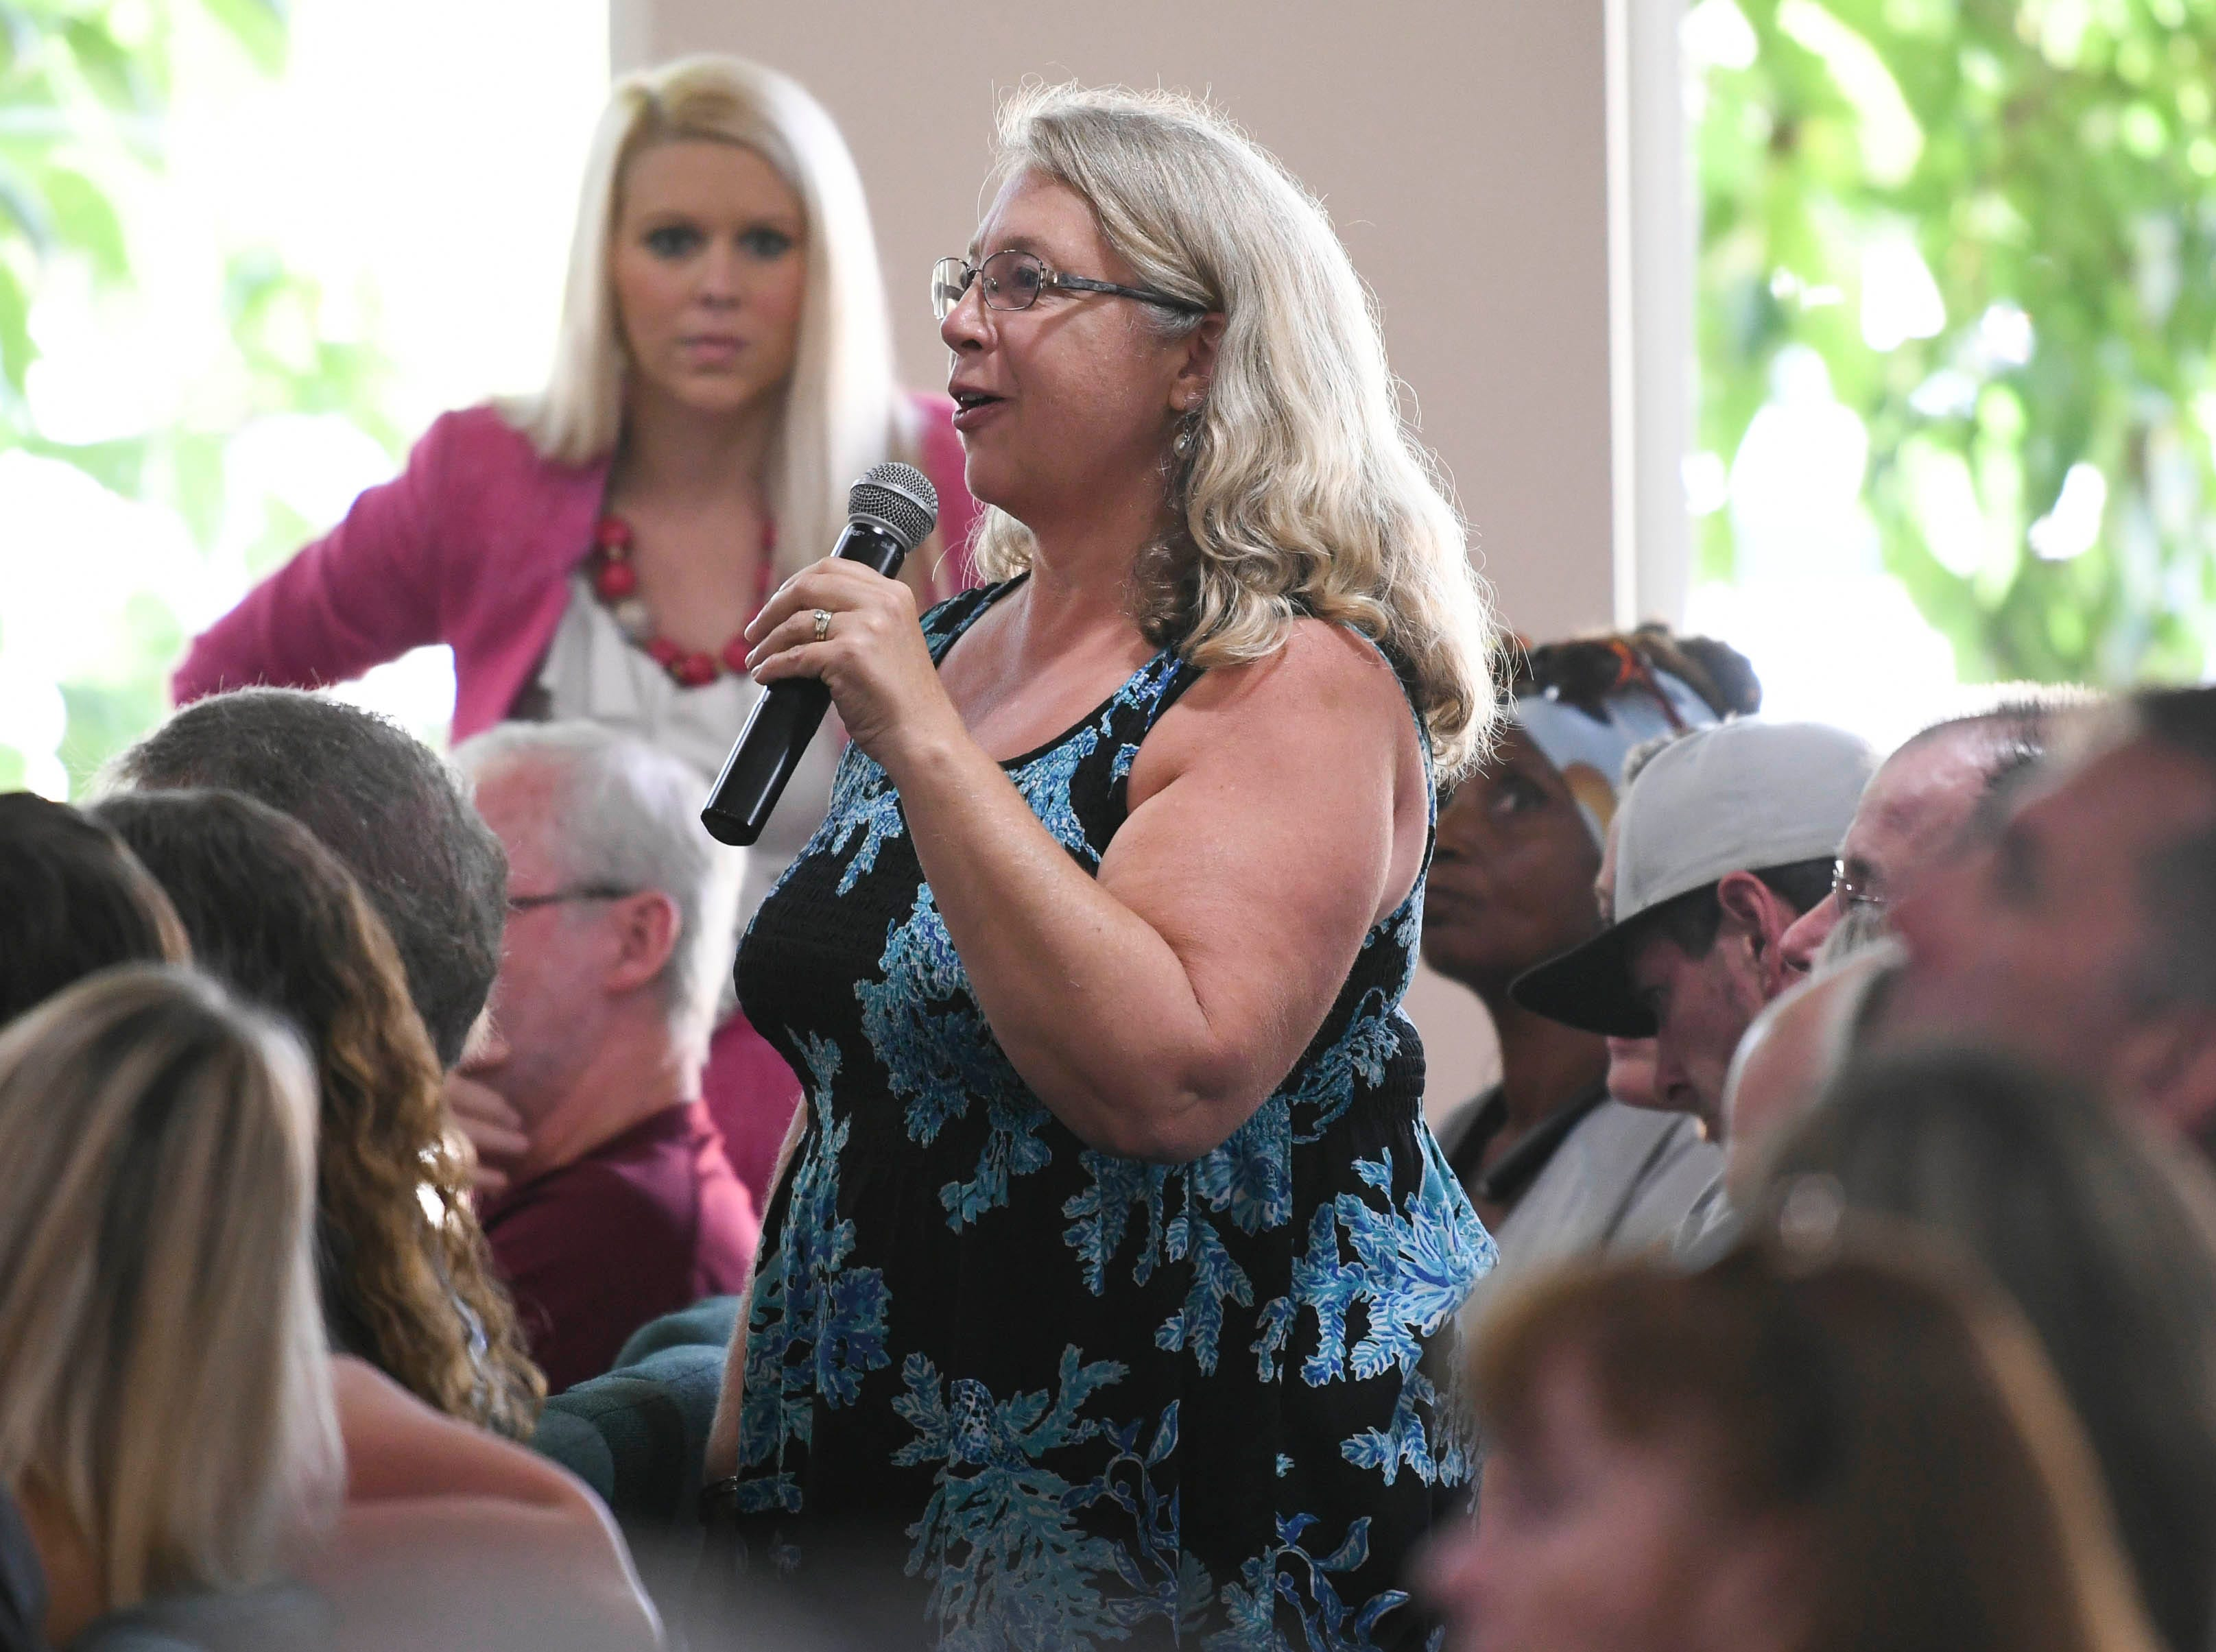 Residents asks questions of environmental activist Erin Brockovich and her associate Bob Bowcock during a town hall at Kingdom Gate Worship Center.